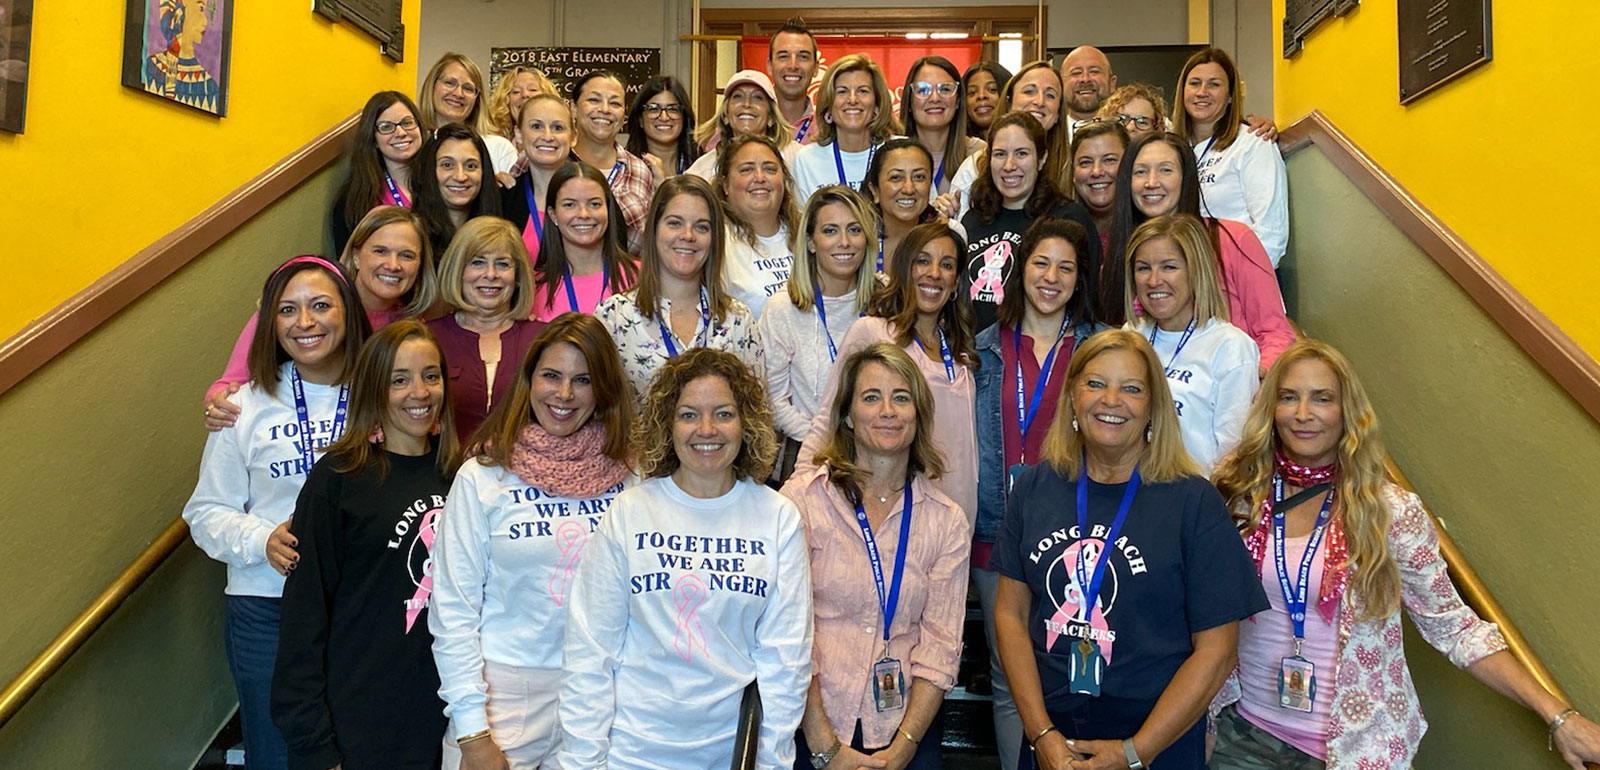 LB Staff Members Go Pink for Cancer Fundraising photo